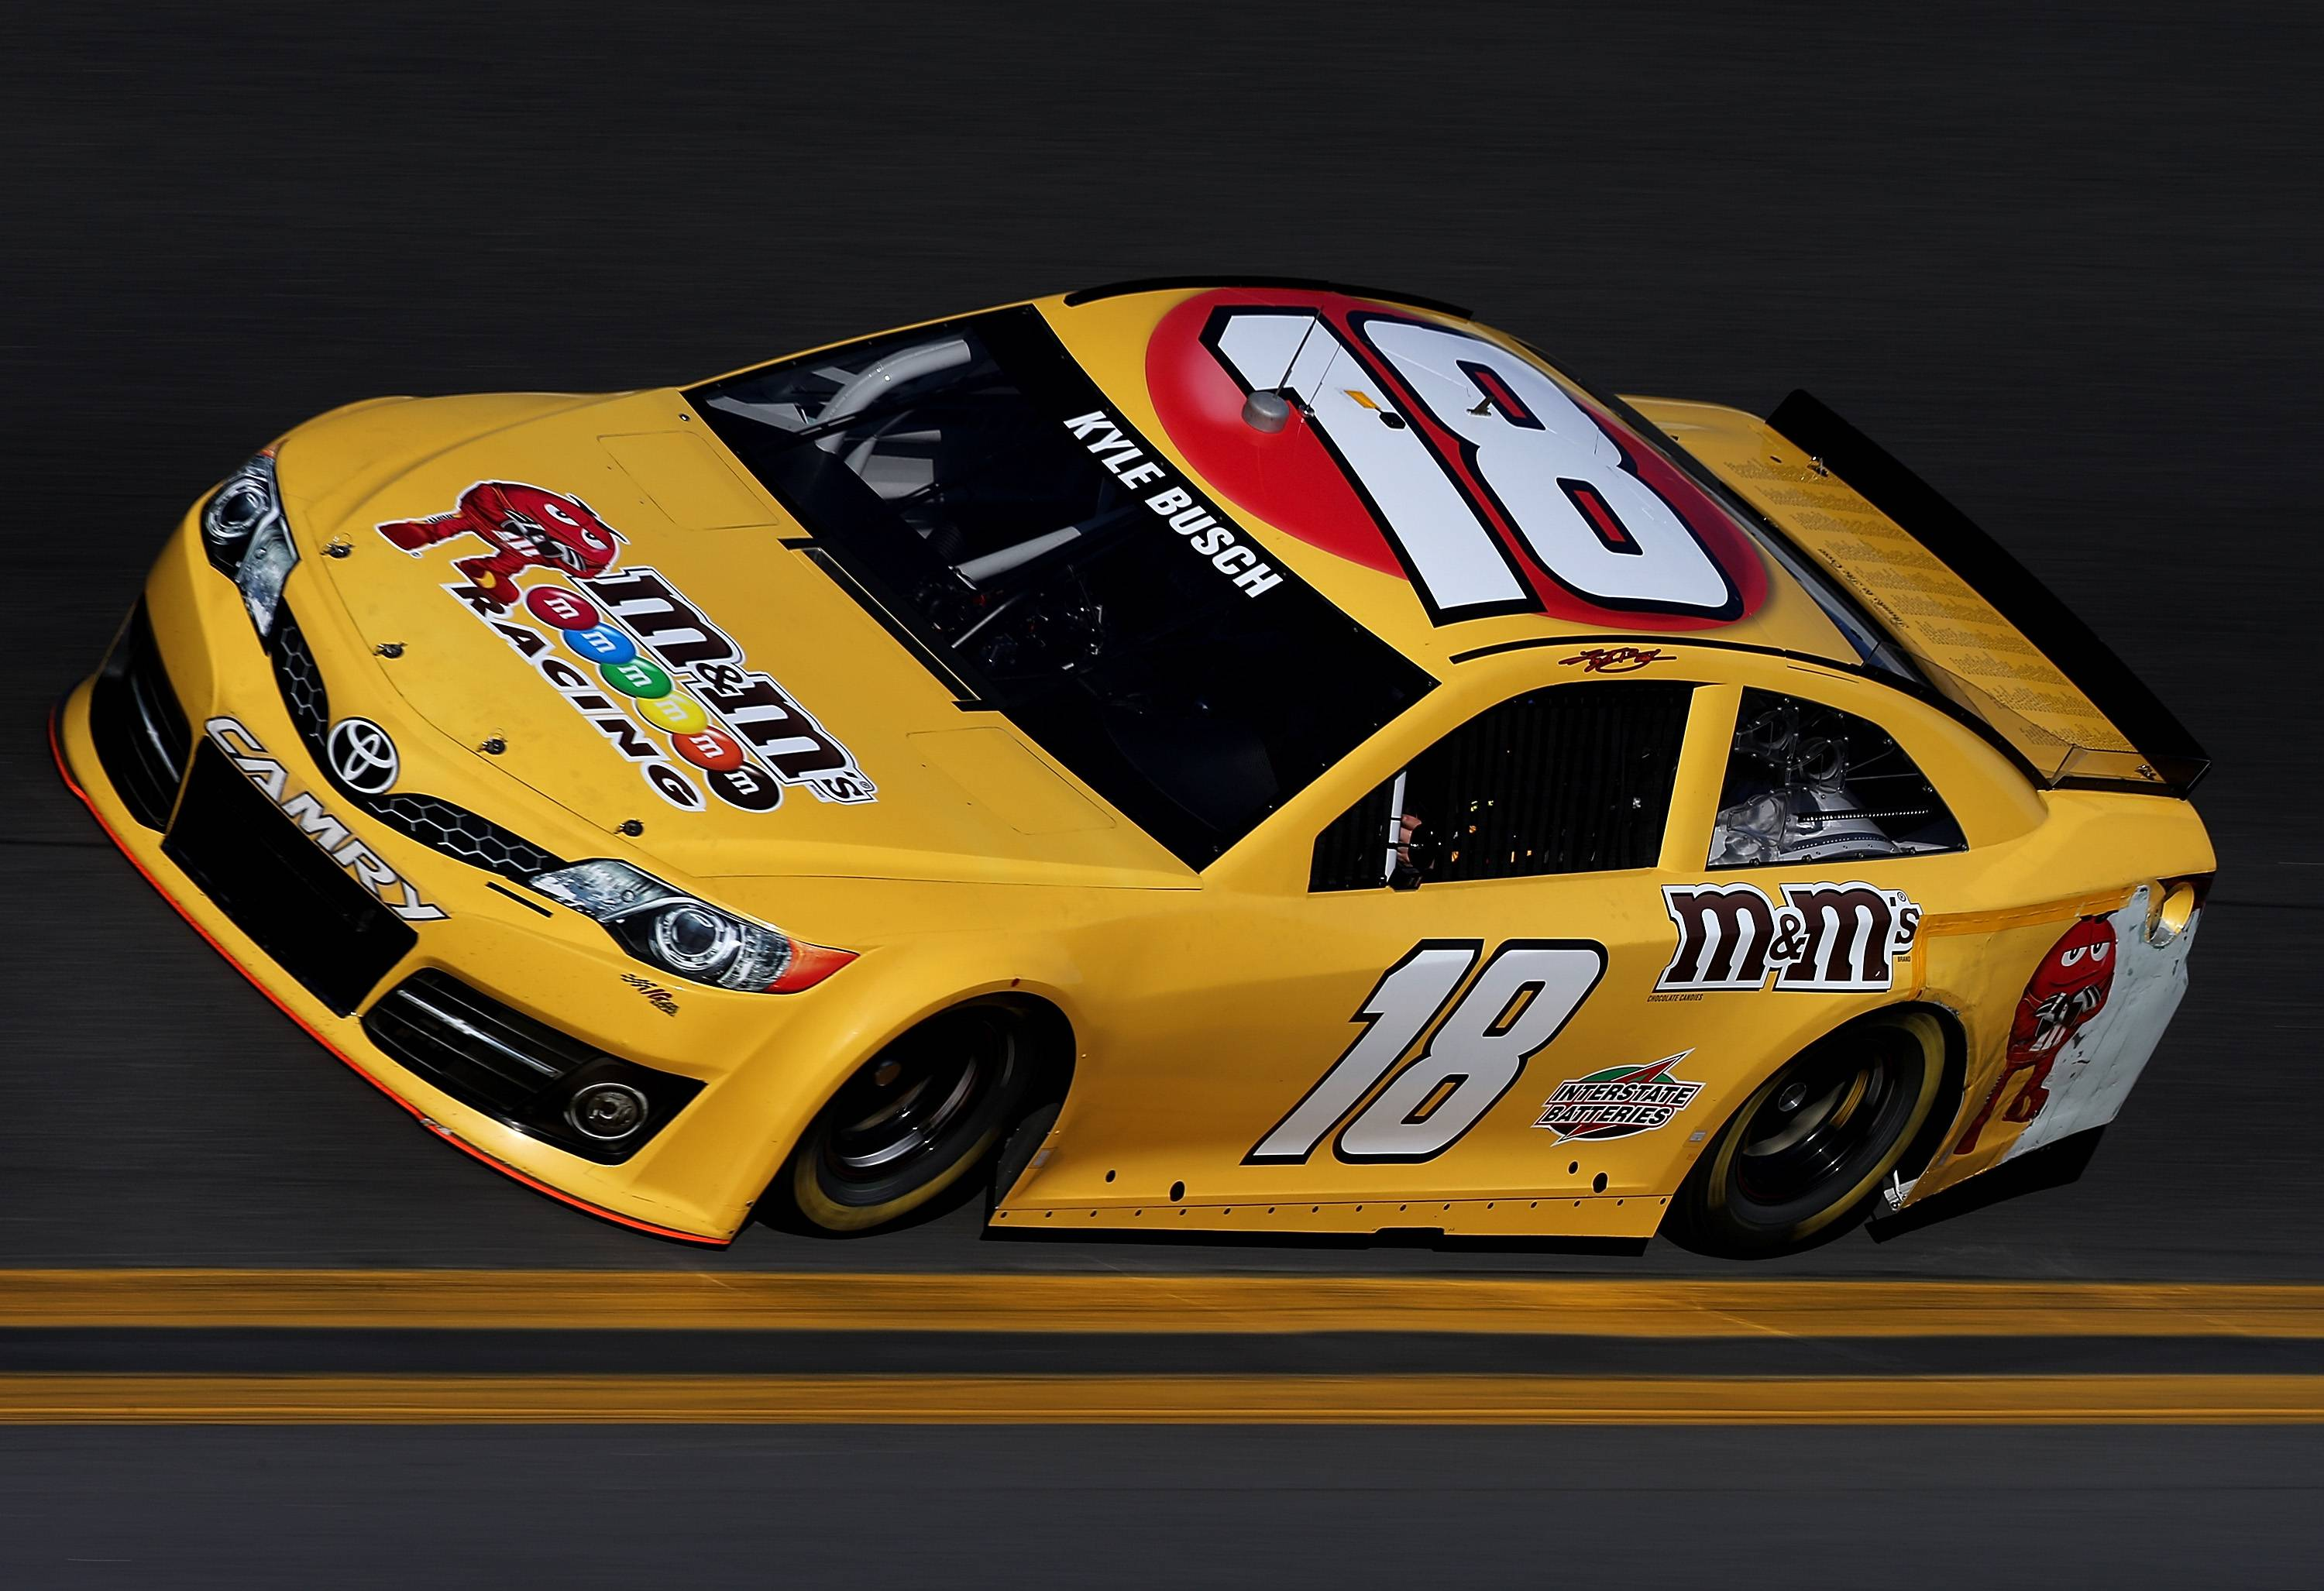 Race Car Wallpaper For Iphone Kyle Busch Wallpapers Wallpaper Cave